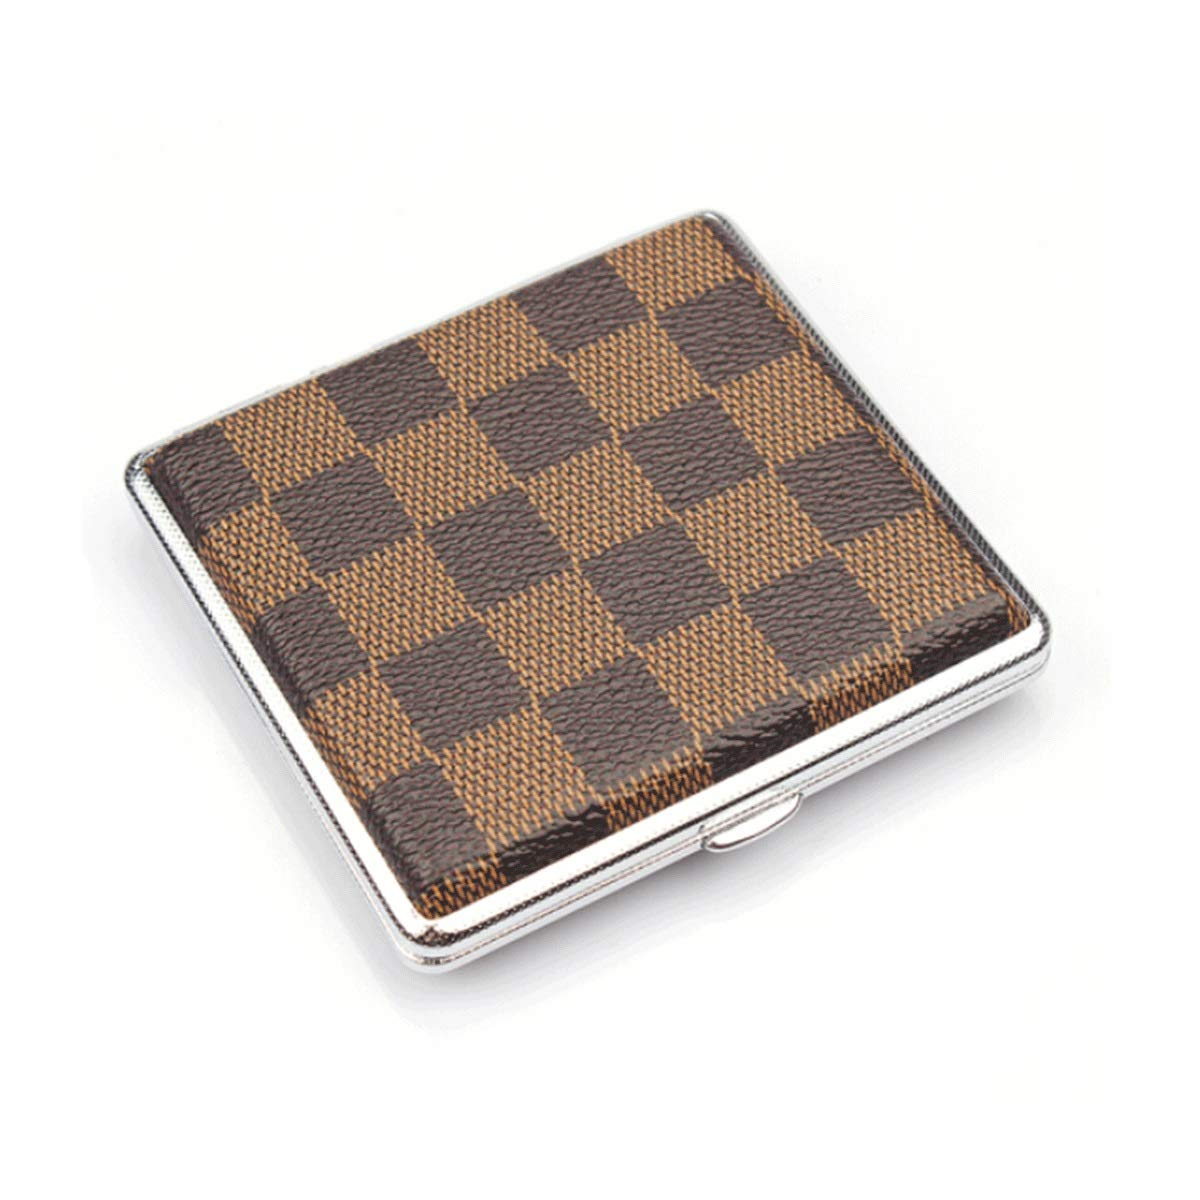 WENPINHUI Cigarette Case Creative Metal Cigarette Case Personality Lattice Cigarette Case Automatic Pop-up Cigarette Box Can Accommodate 20 Cigarettes by WENPINHUI